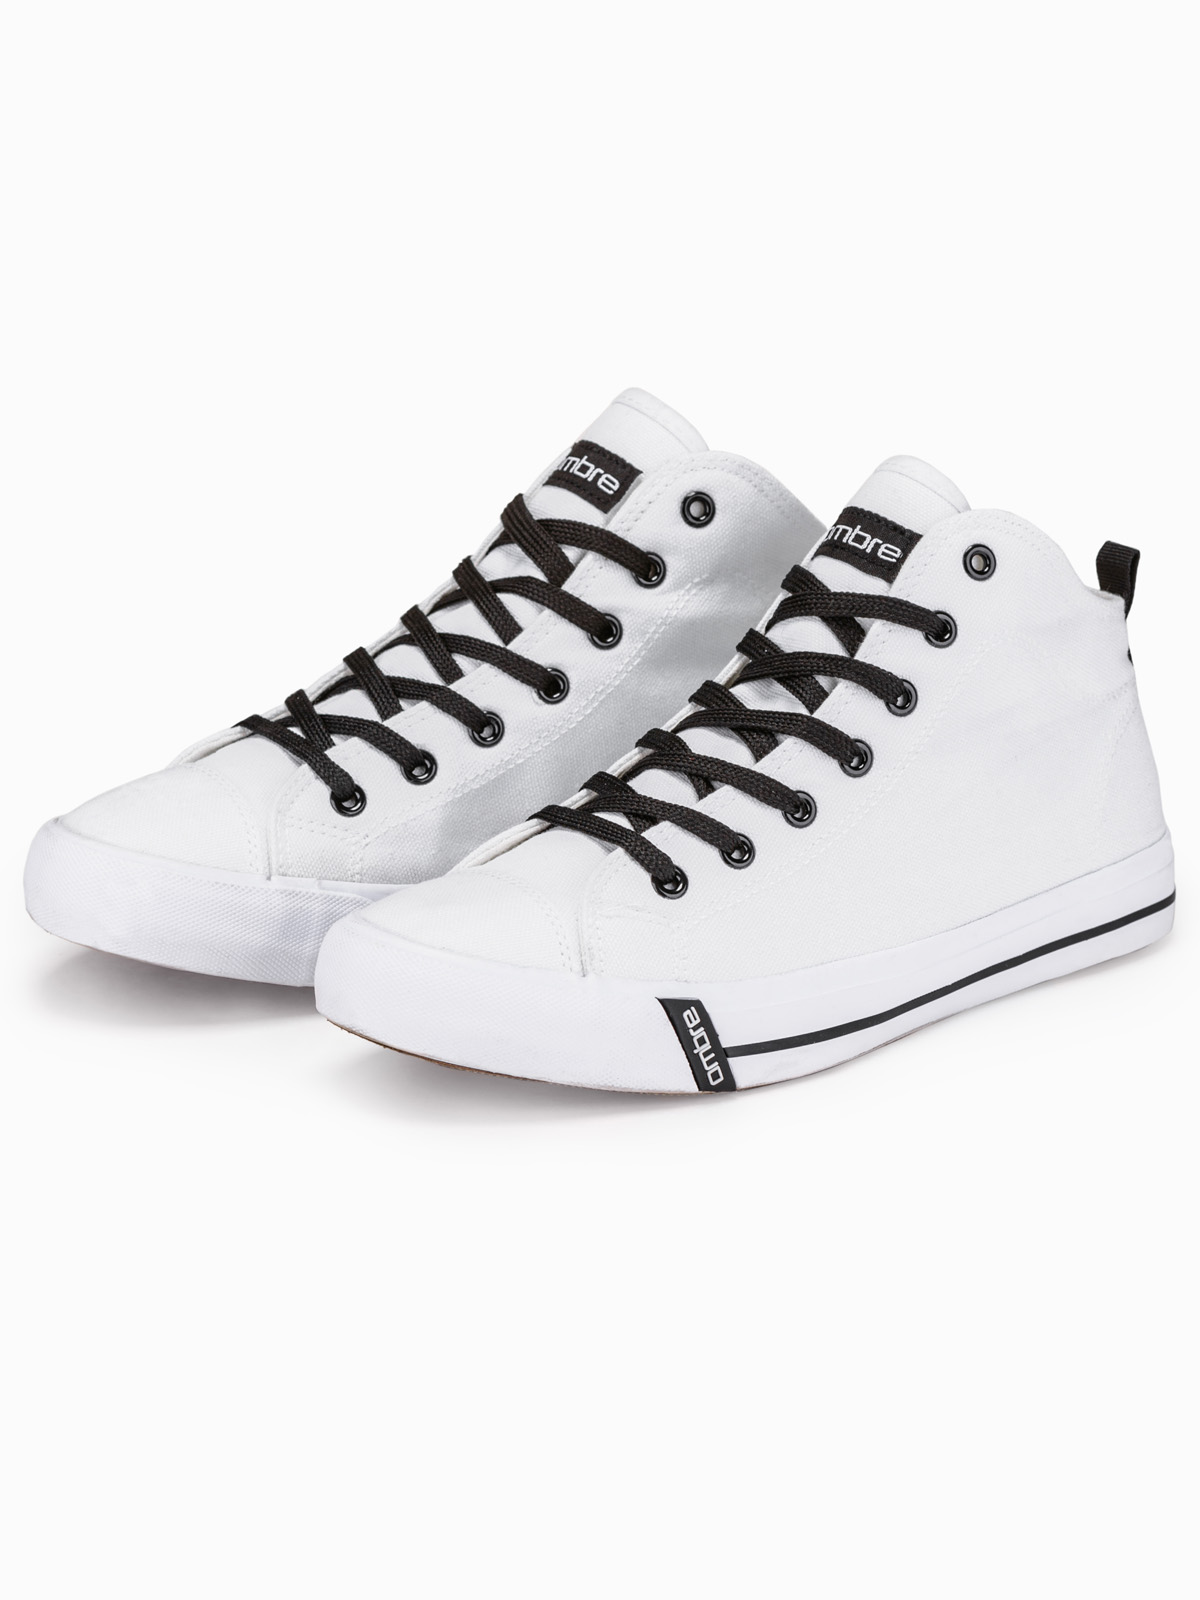 Men's high-top trainers T304 - white | MODONE wholesale